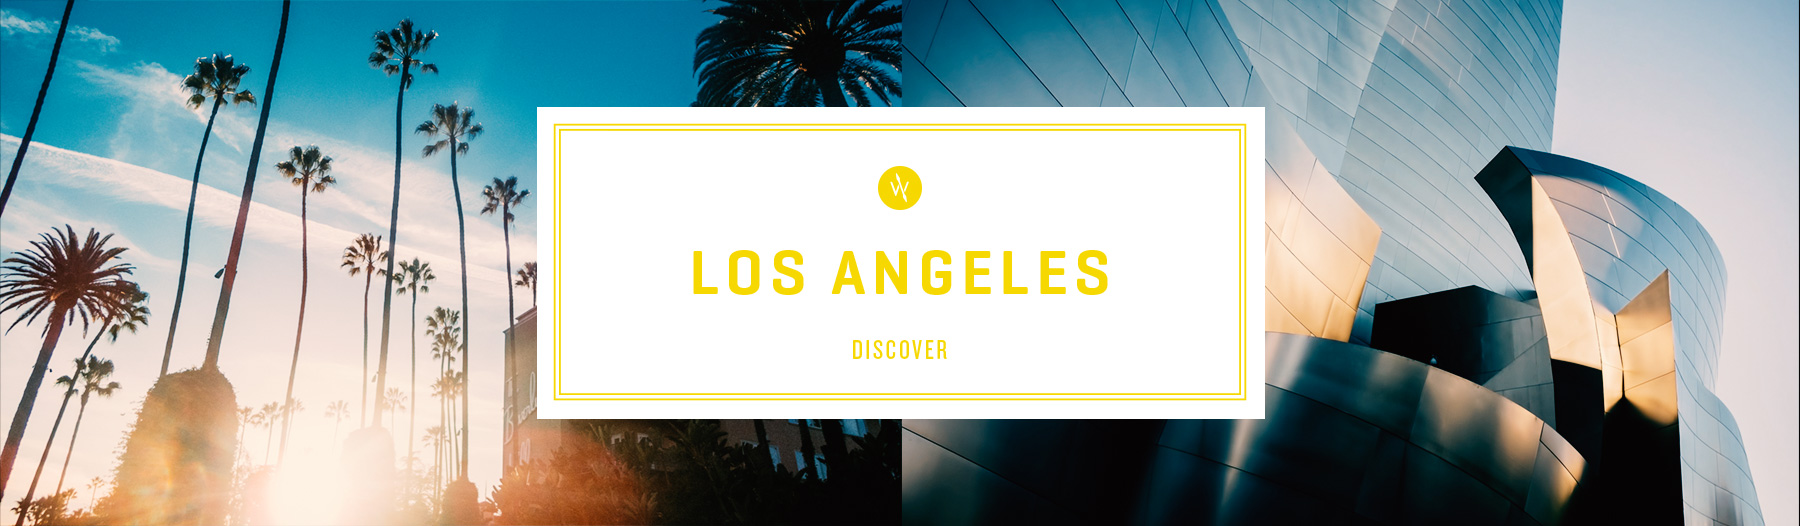 WILDSAM-Los-Angeles-HEADER.jpg